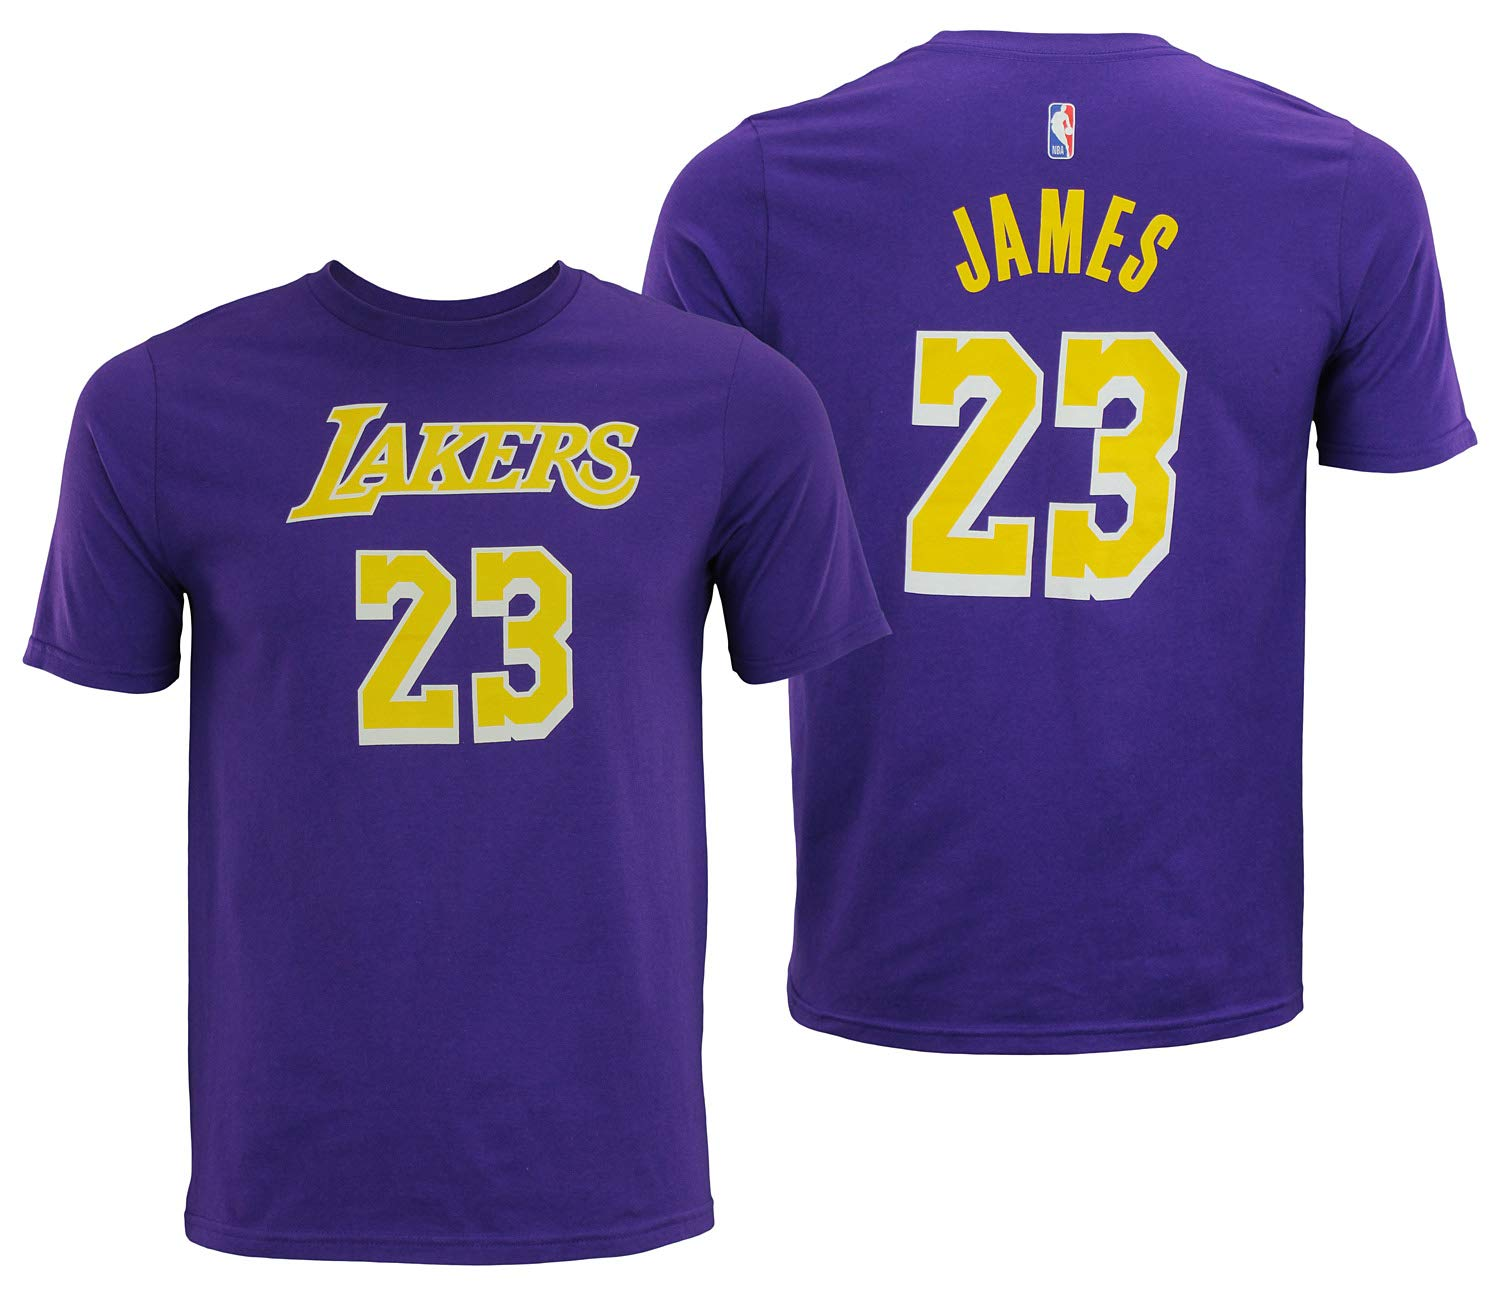 release date 05857 893bd NBA Youth Los Angeles Lakers Lebron James Player Tee, Pick A Color